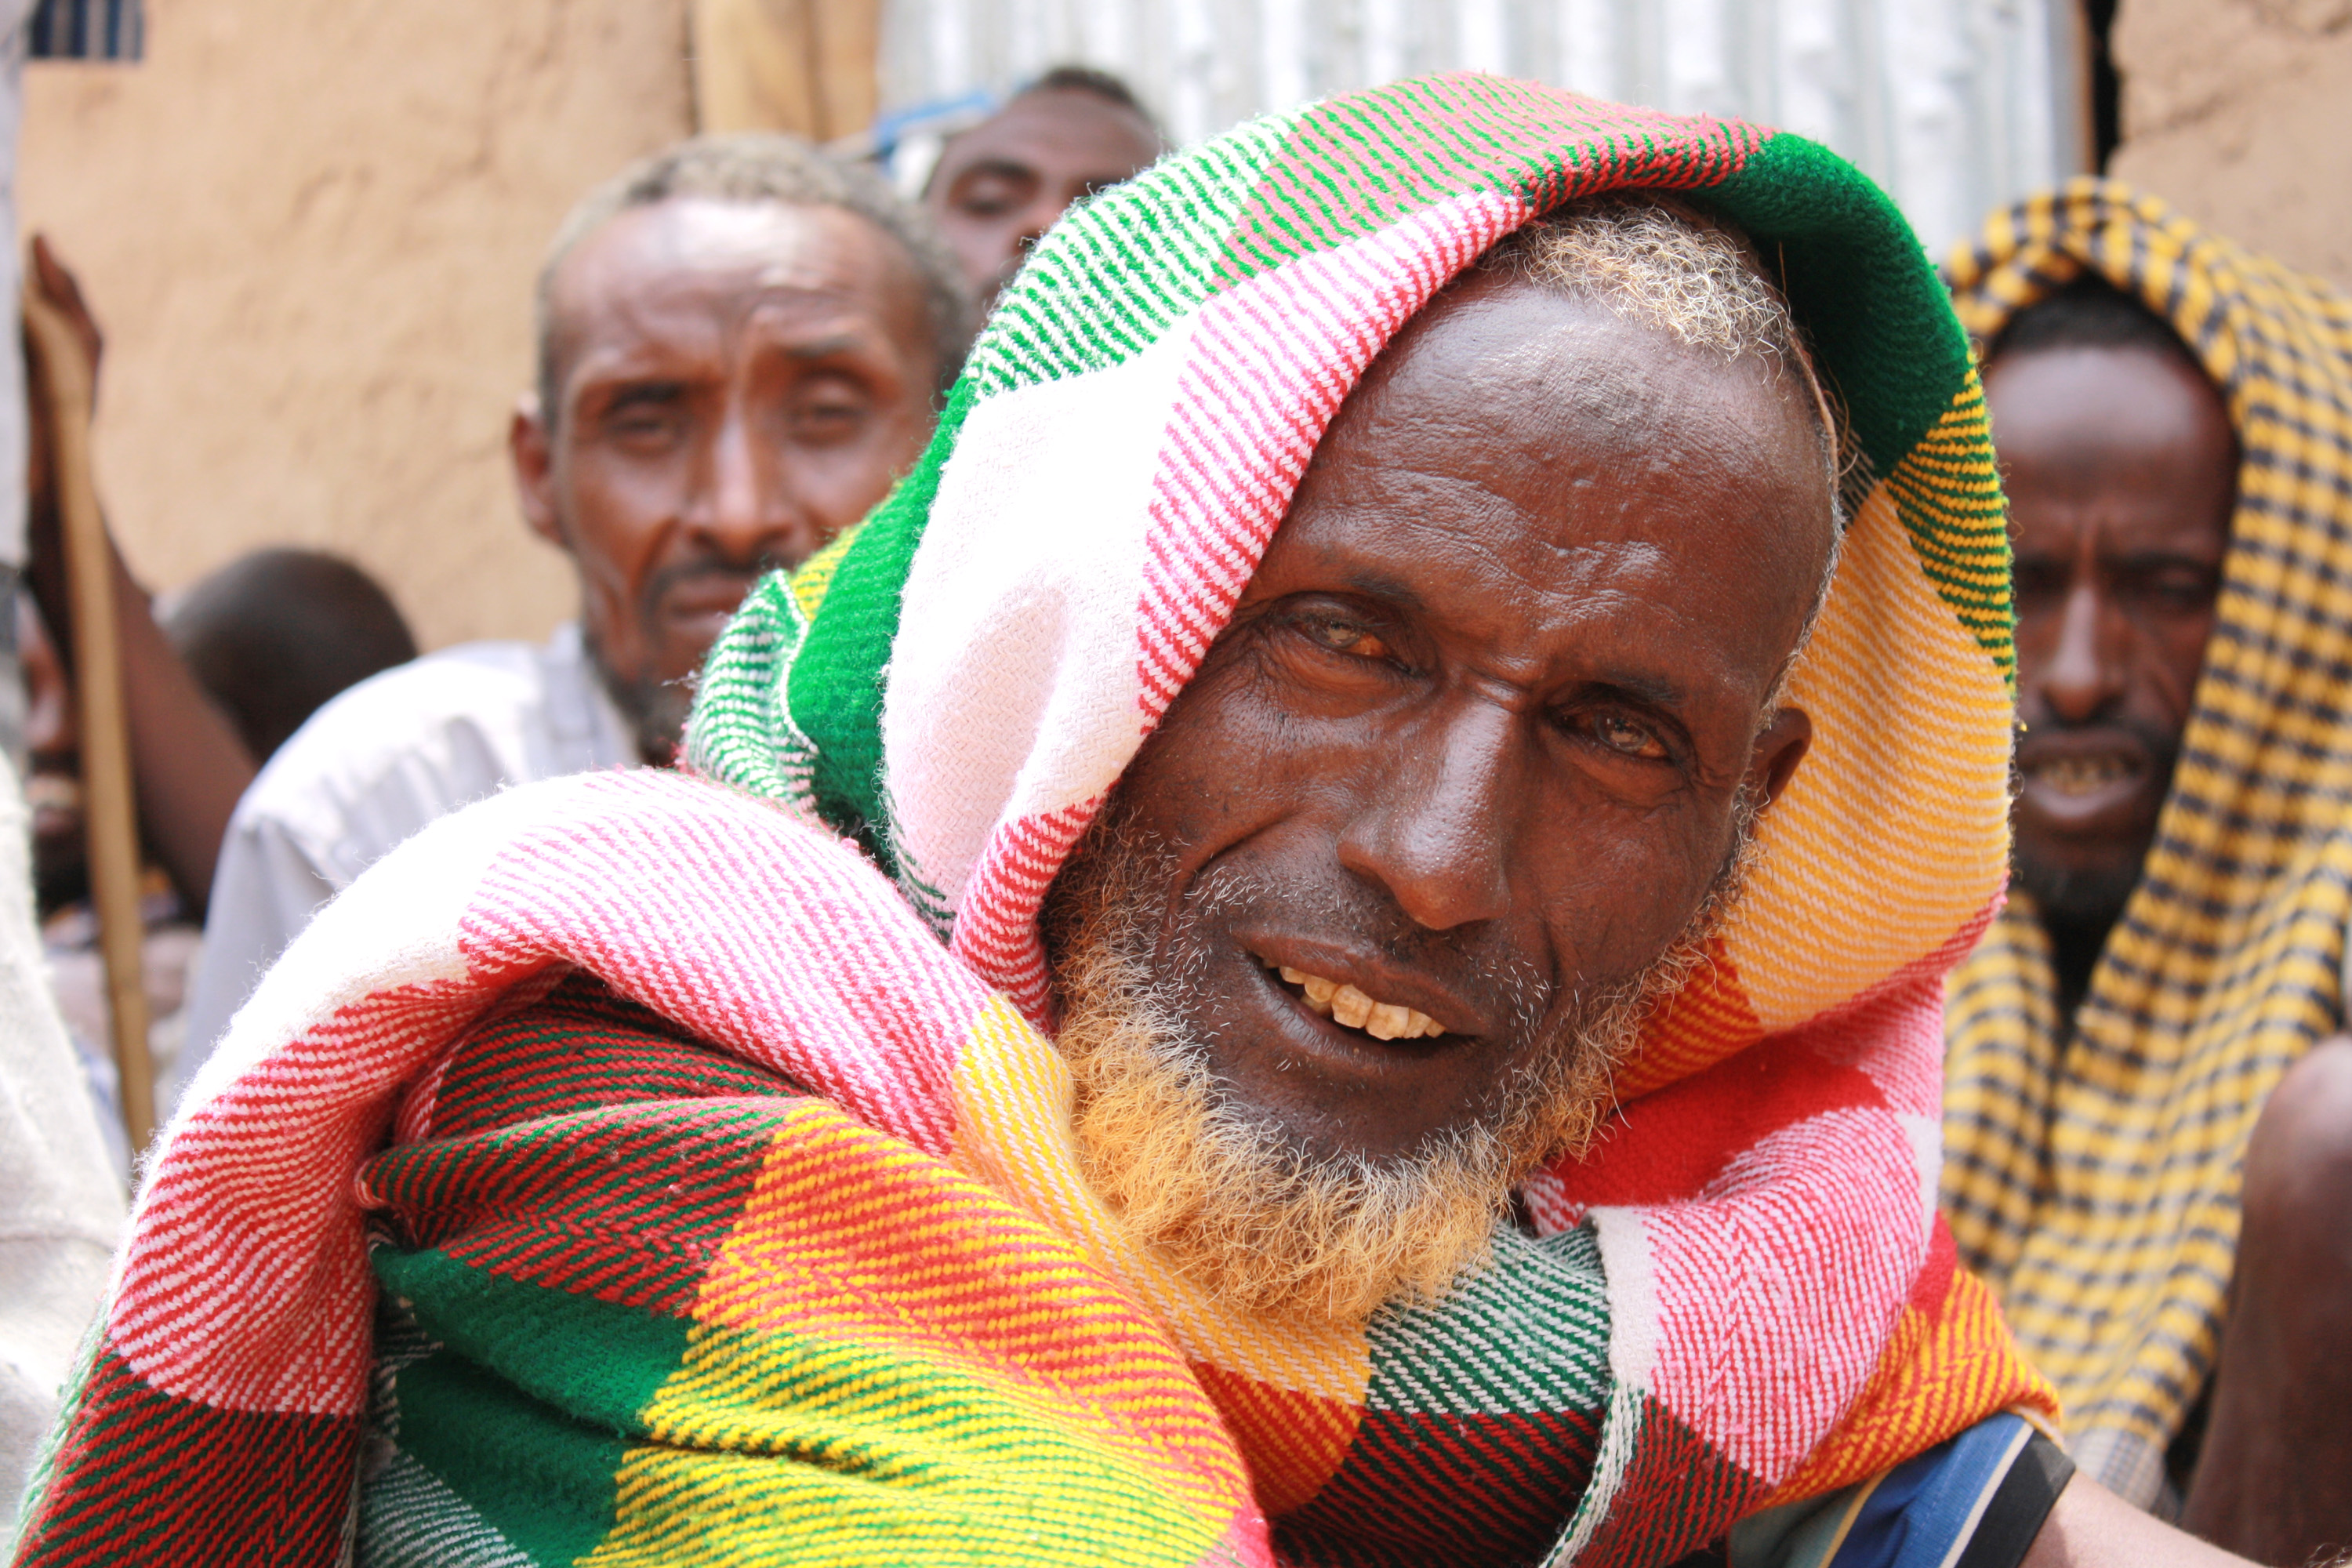 A pastoralist in Bisle kebele, Shinile zone, in Ethiopia's Somali region says the July 2011drought is the worst he has ever seen